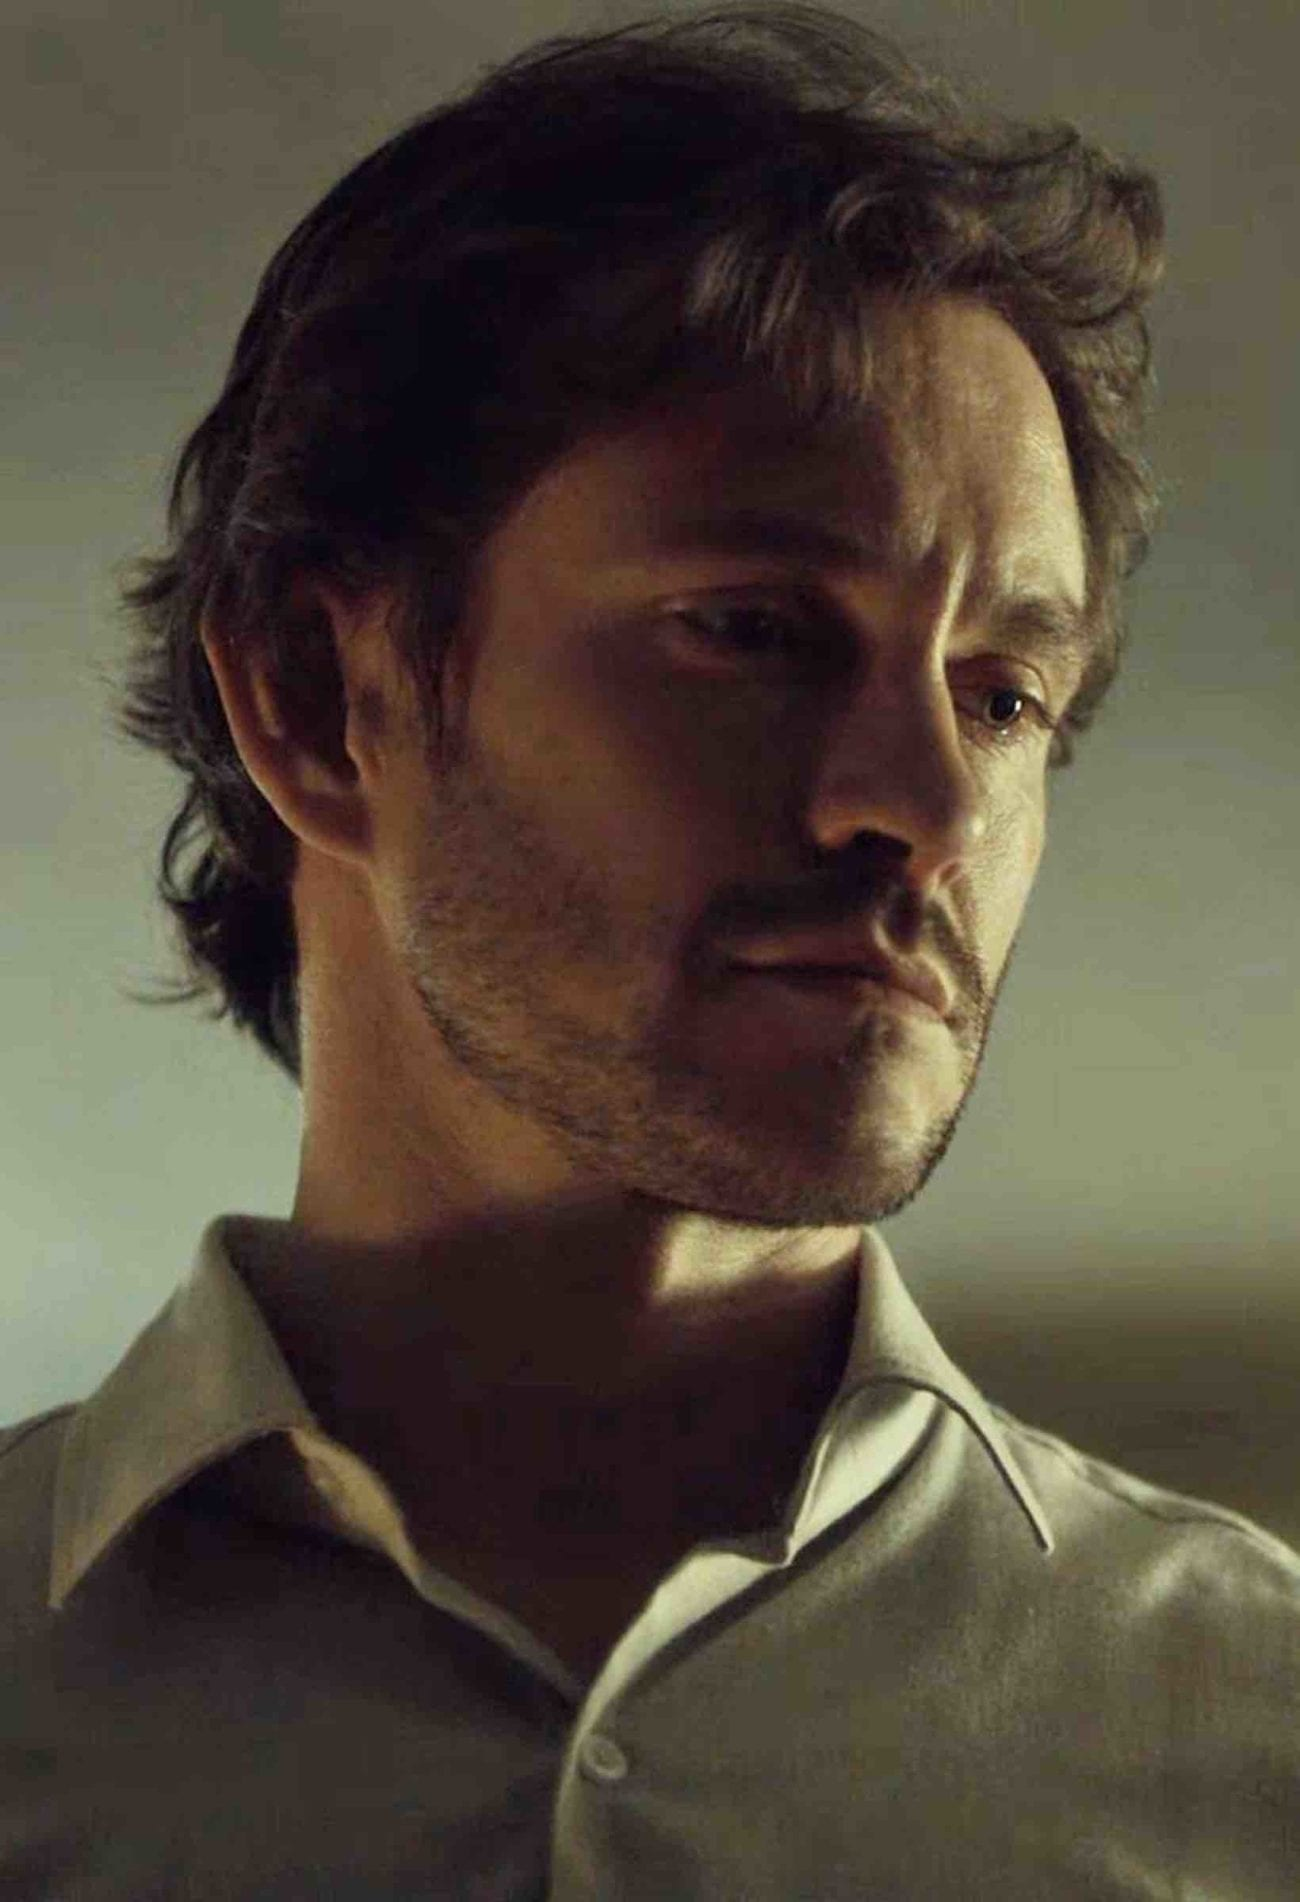 2020 is starting to look like Hugh Dancy's year, with a few recurring roles in big shows. Here's everywhere you can catch Dancy this year.